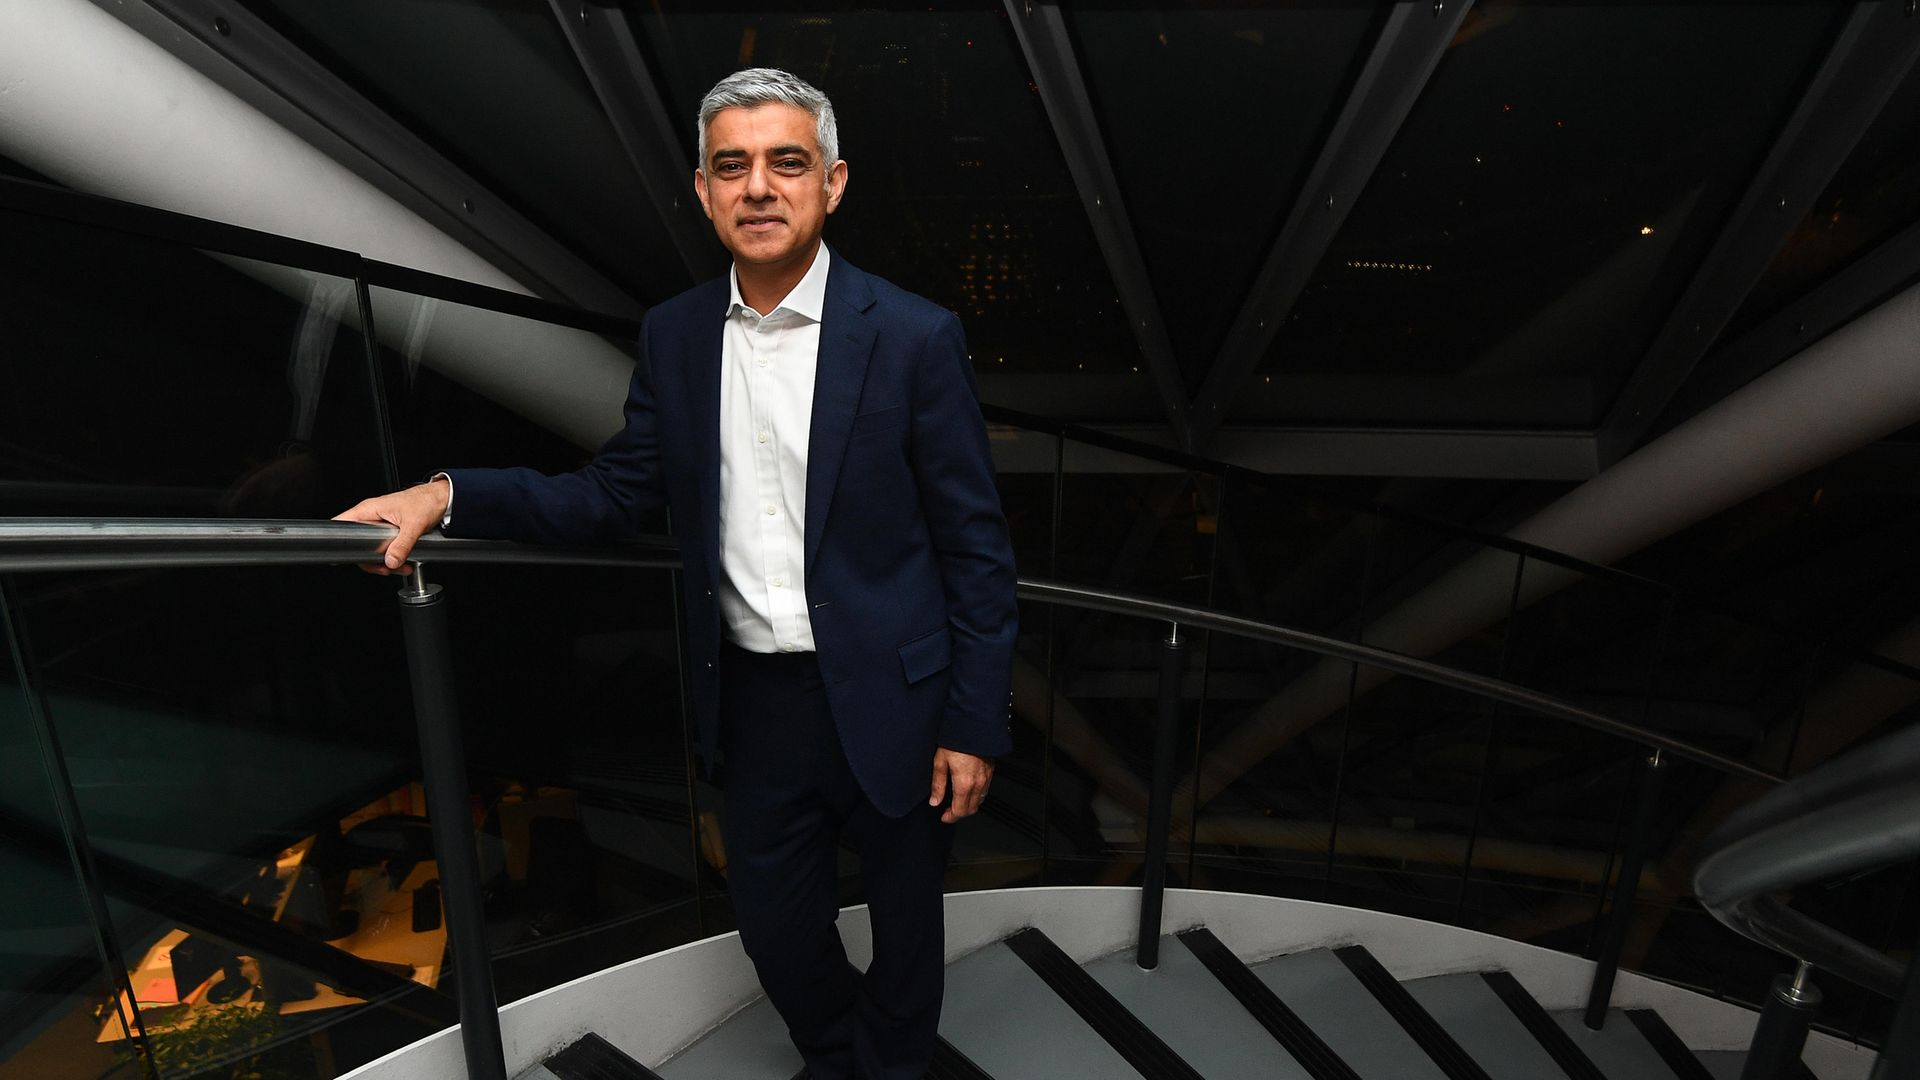 Labour's Sadiq Khan arriving at City Hall, London, for the declaration of Mayor of London - Credit: PA